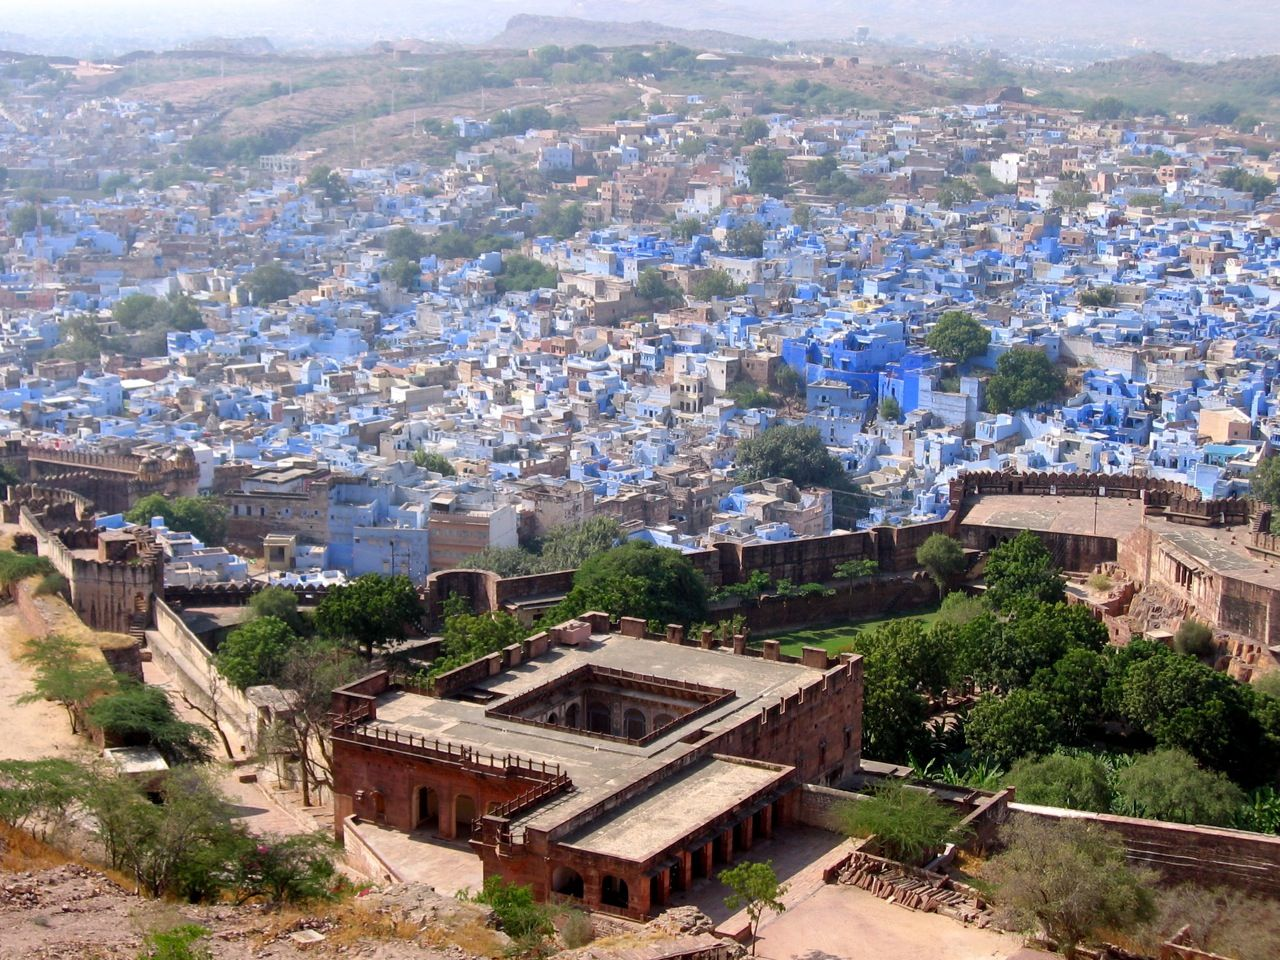 Rajasthan Tour Packages Rajasthan Tourism (With images